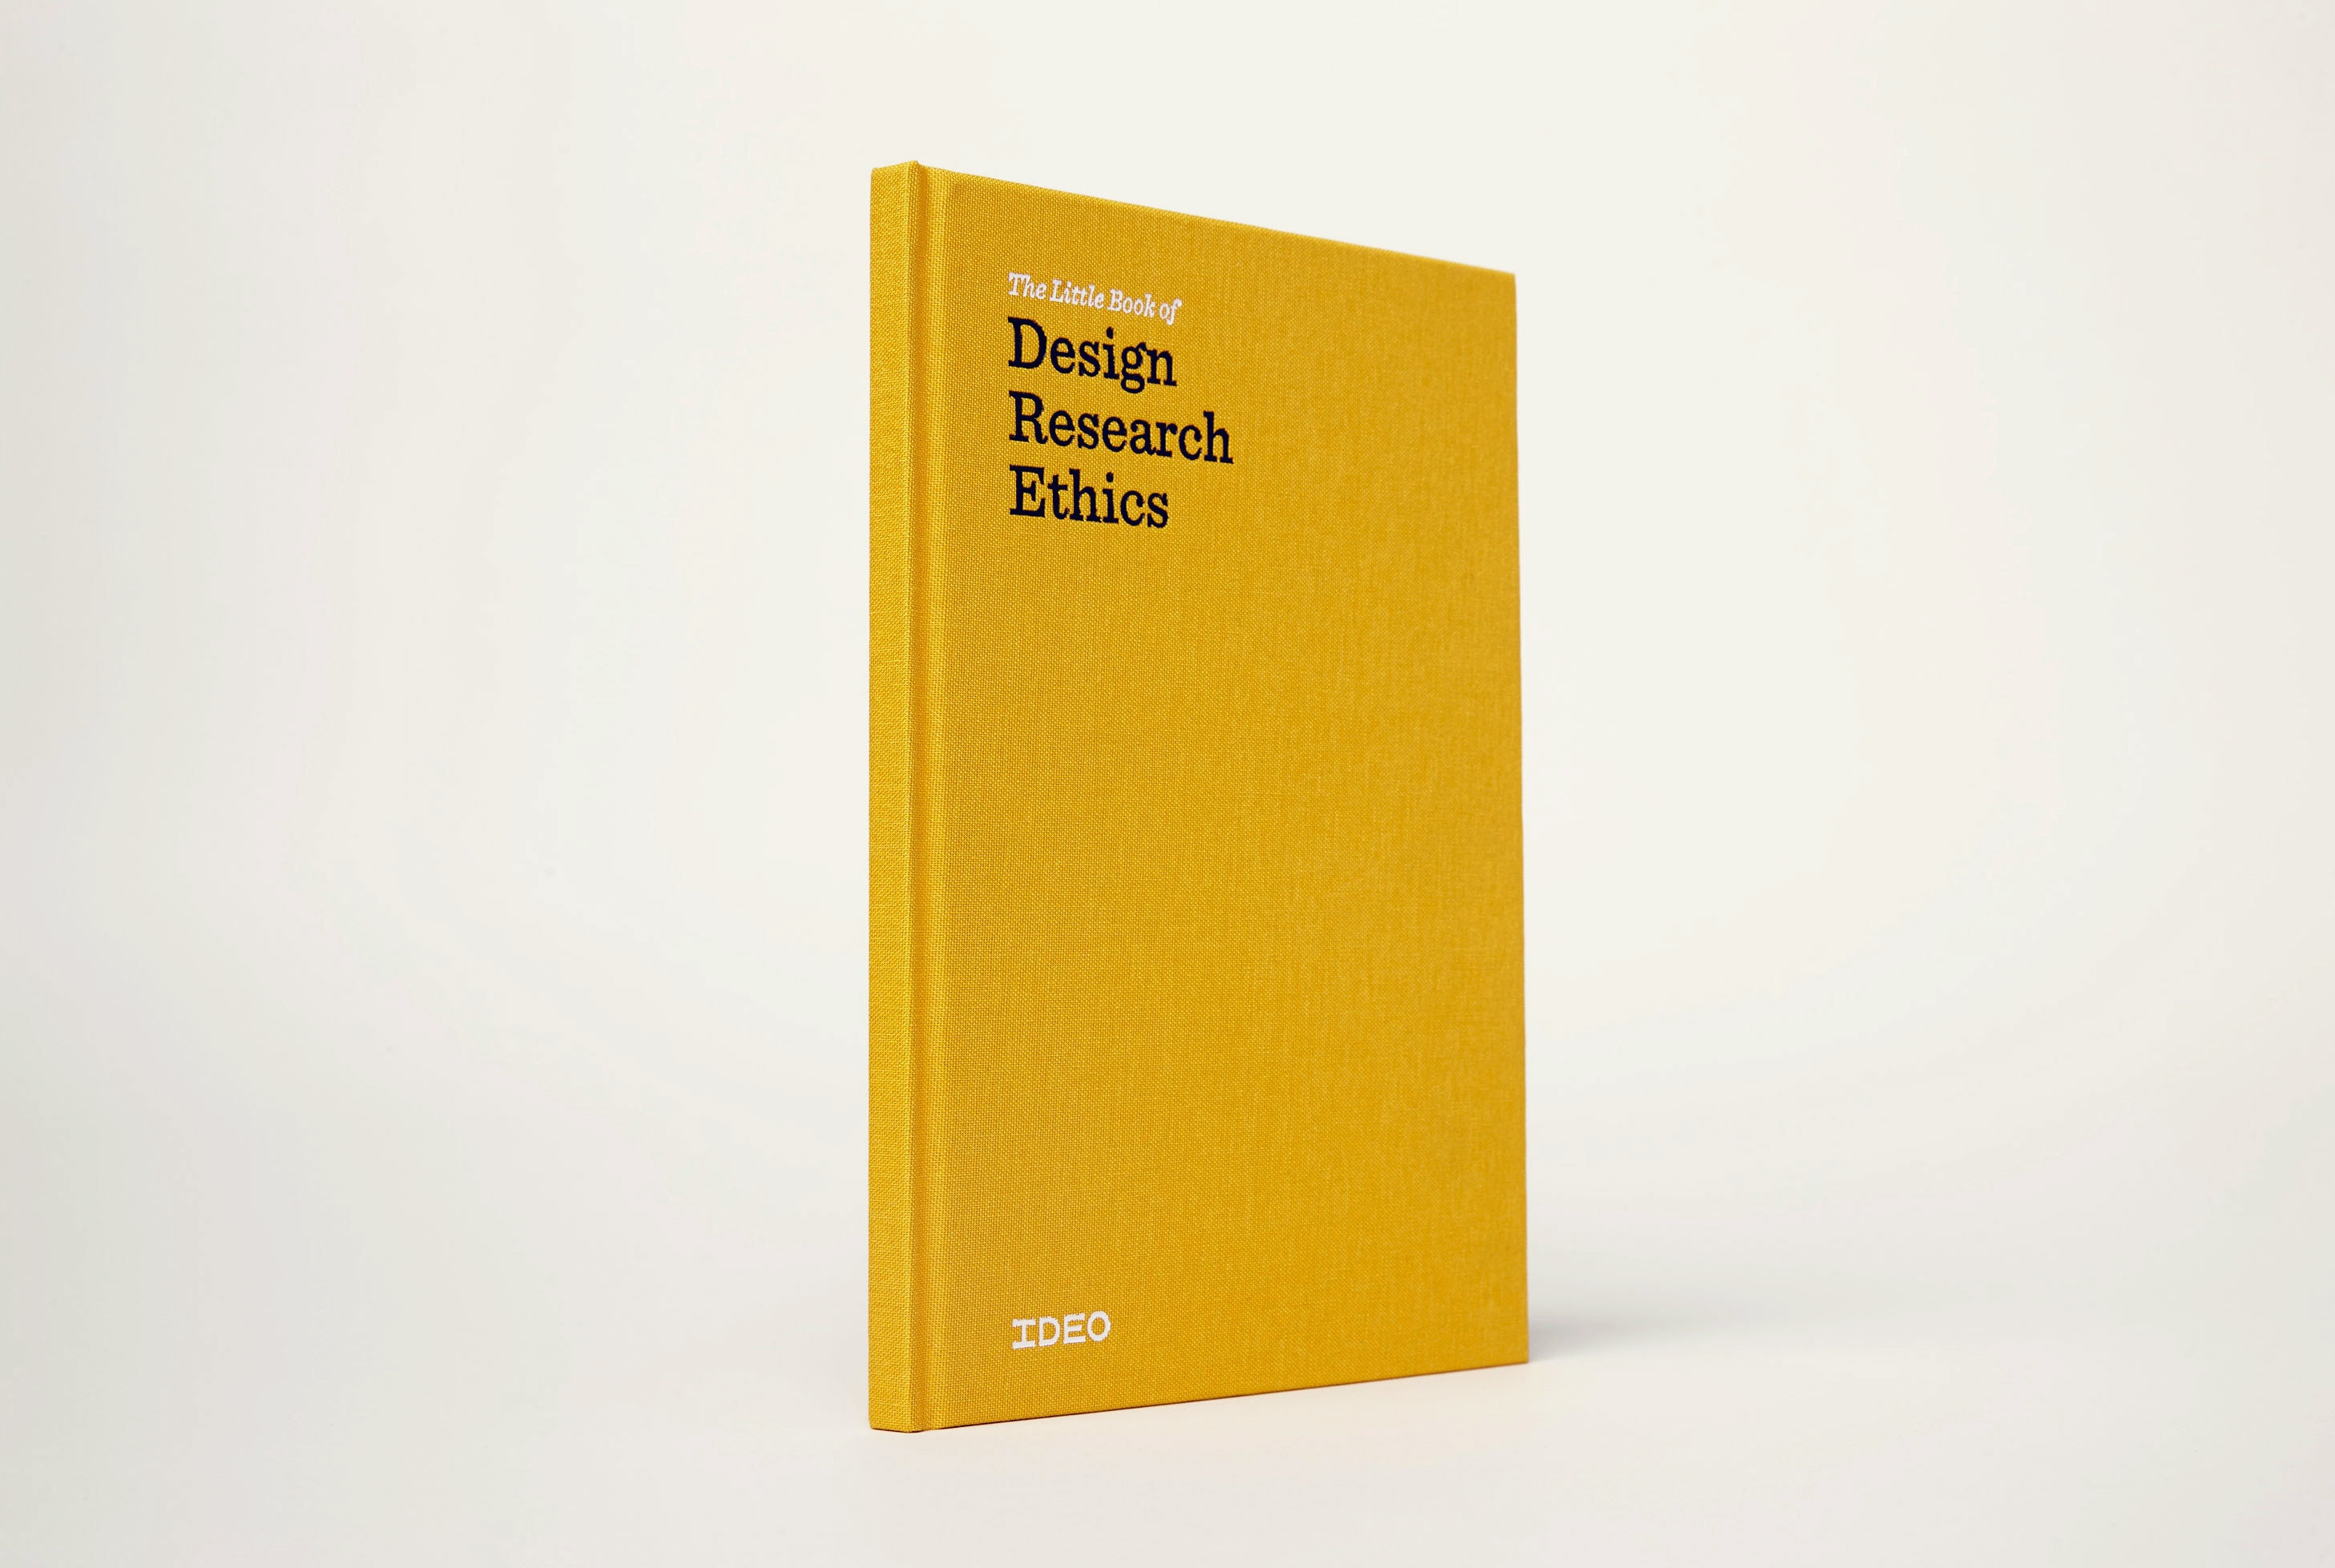 Ideo Books Design Research Ethics